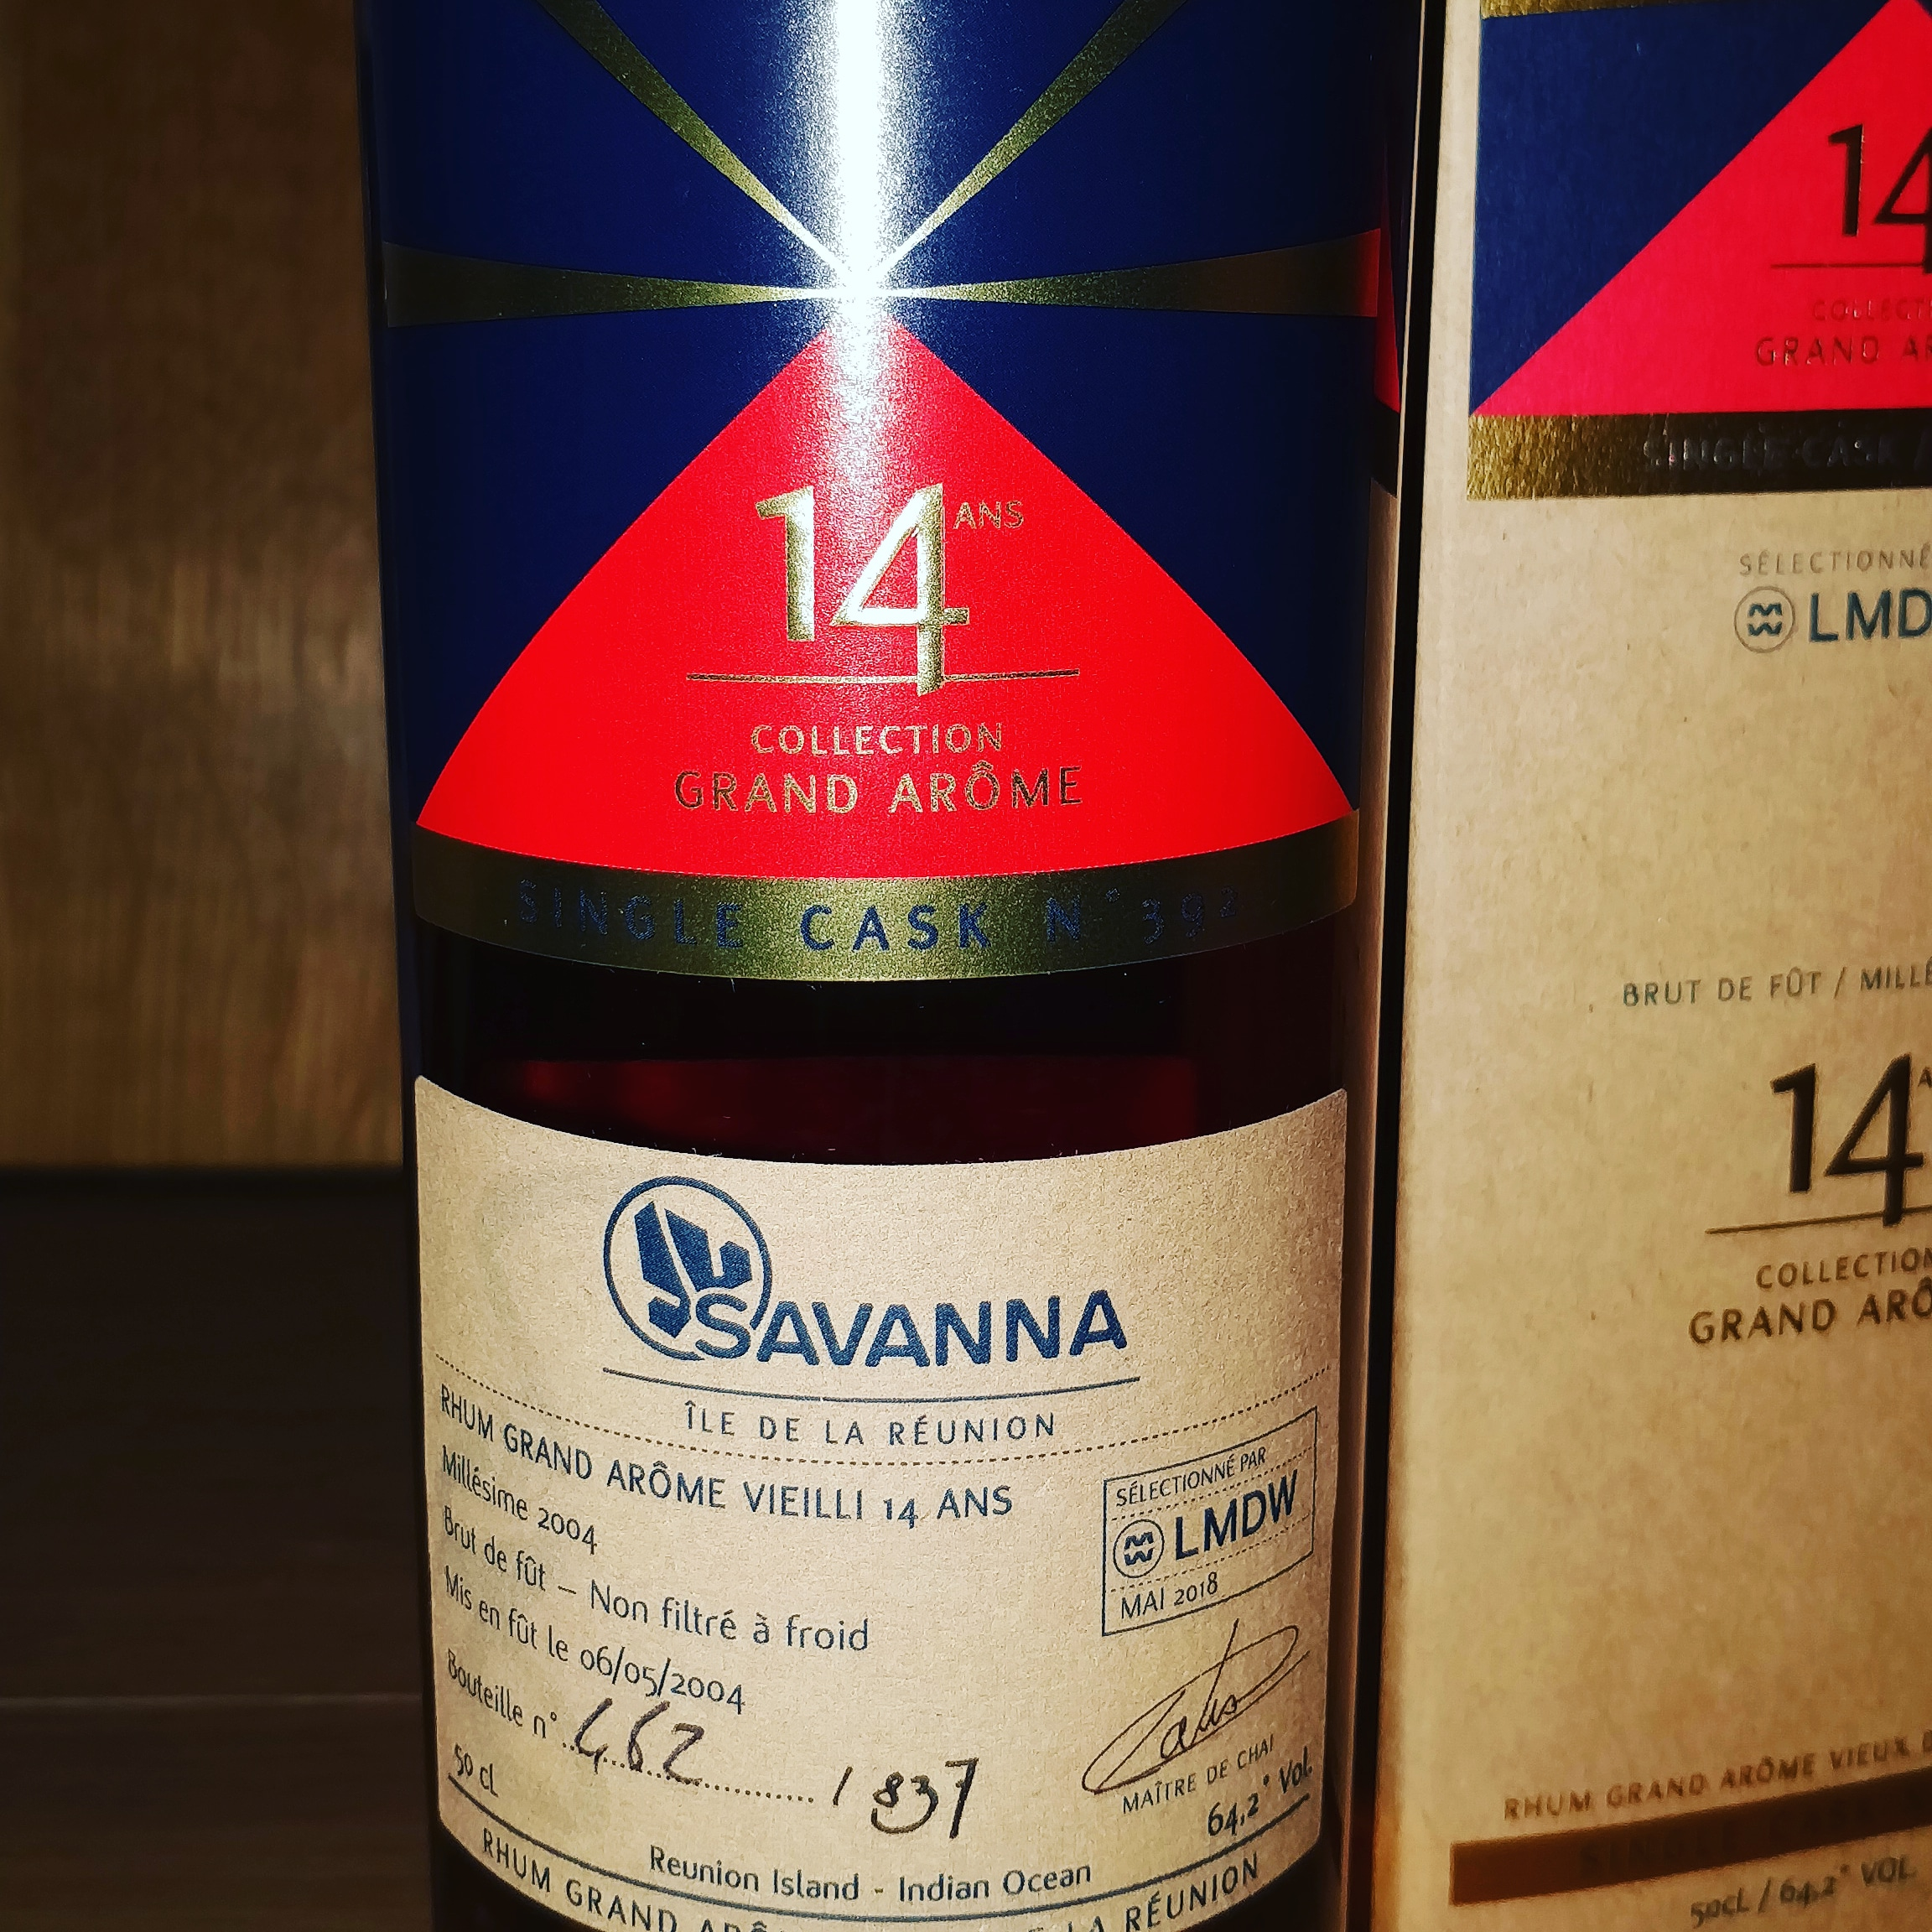 Savanna 14 ans Grand Arôme  single cask 392